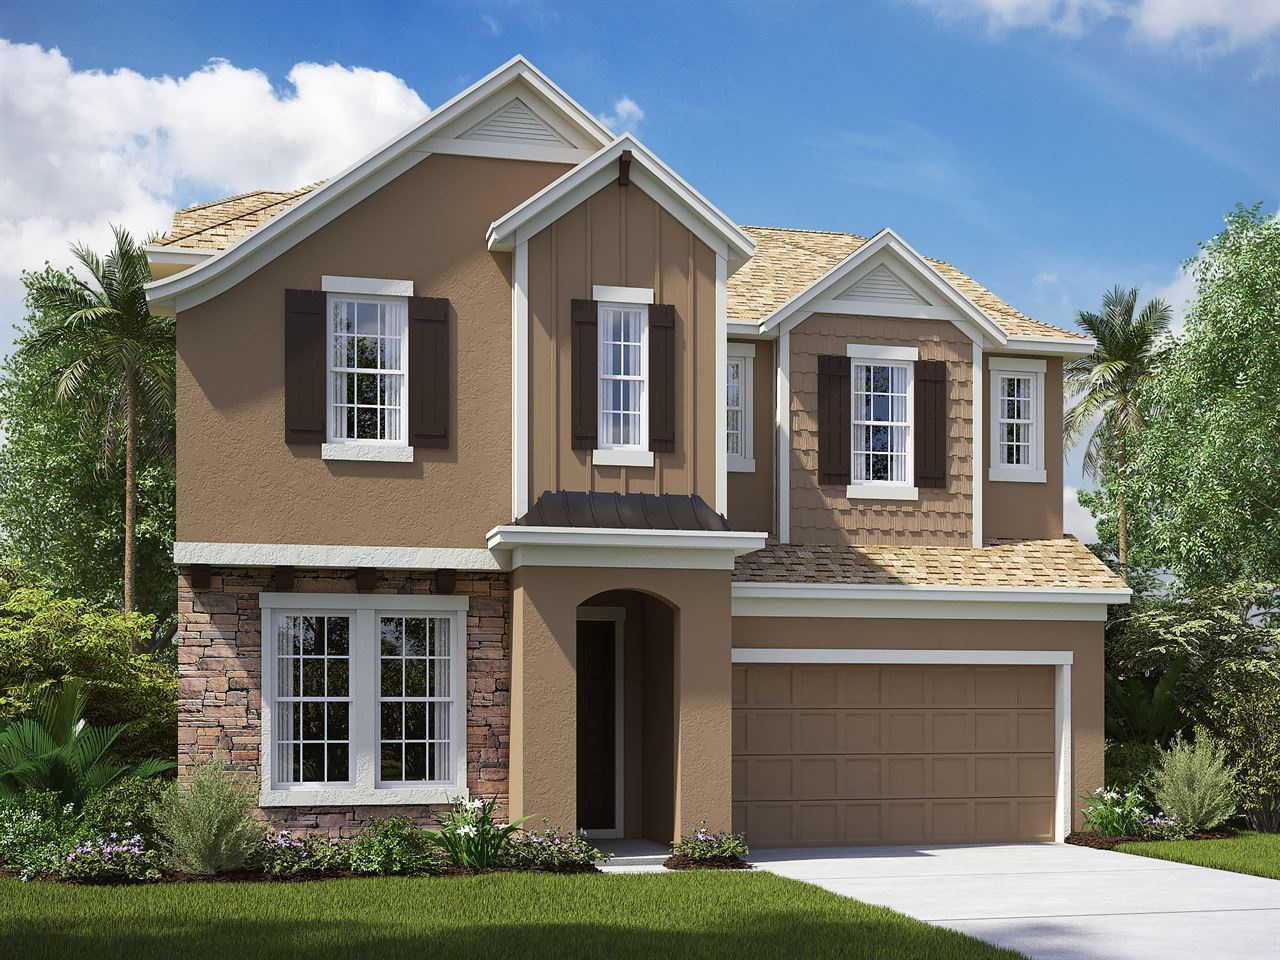 Starkey ranch garden homes new homes in odessa fl by for Ryland homes